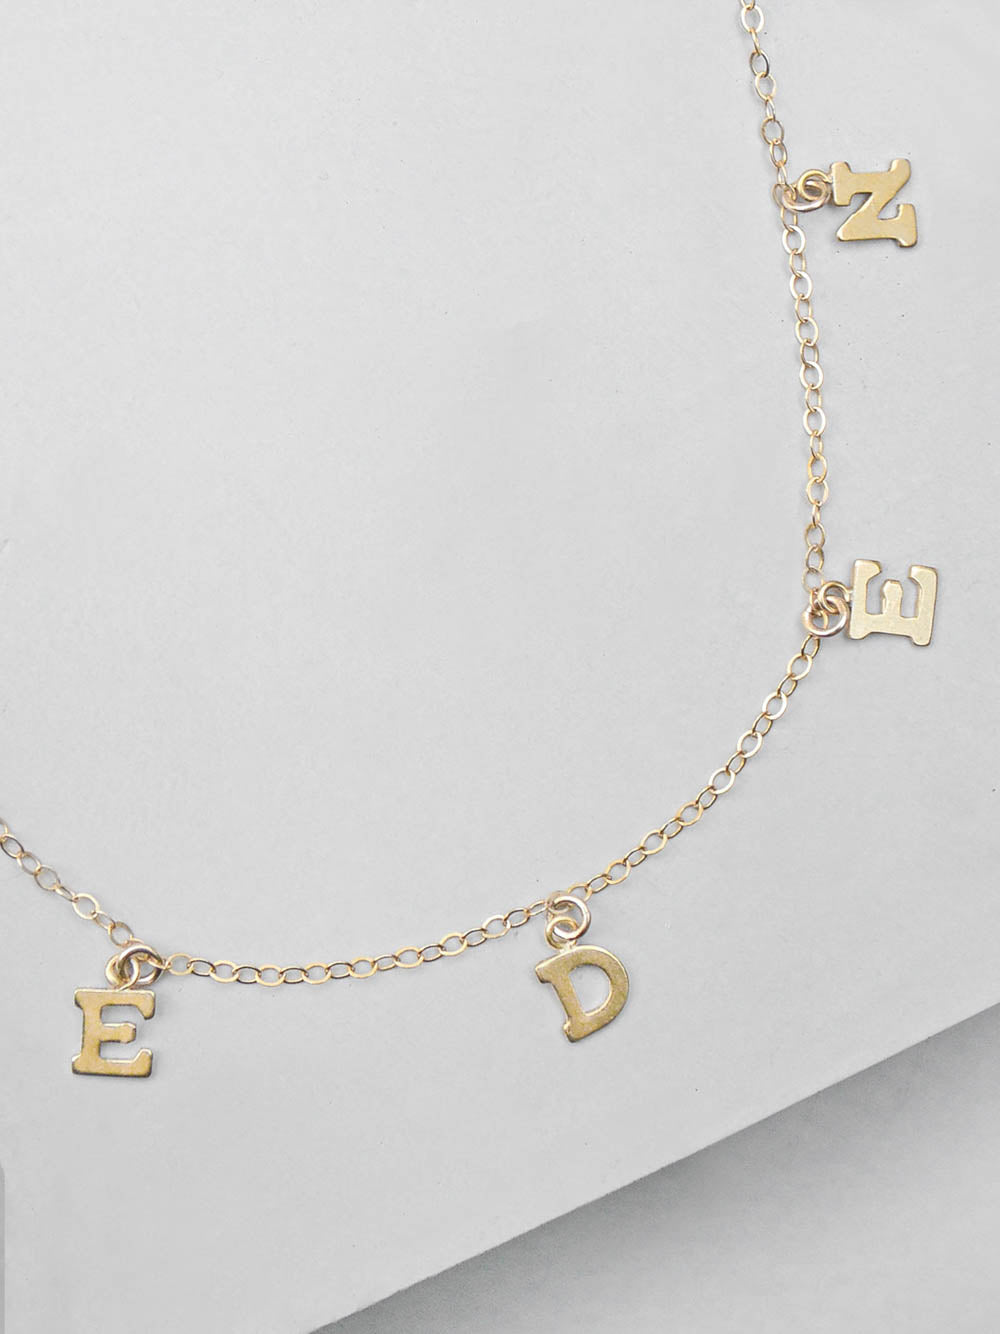 Dangle Name Necklace - Gold Filled